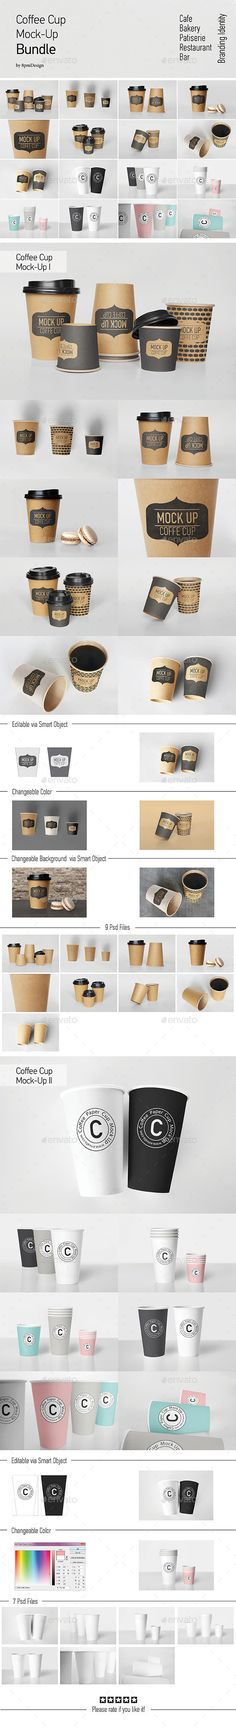 Coffee Cup MockUp Bundle — Photoshop PSD #realism #cup • Available here → https://graphicriver.net/item/coffee-cup-mockup-bundle/13374319?ref=pxcr